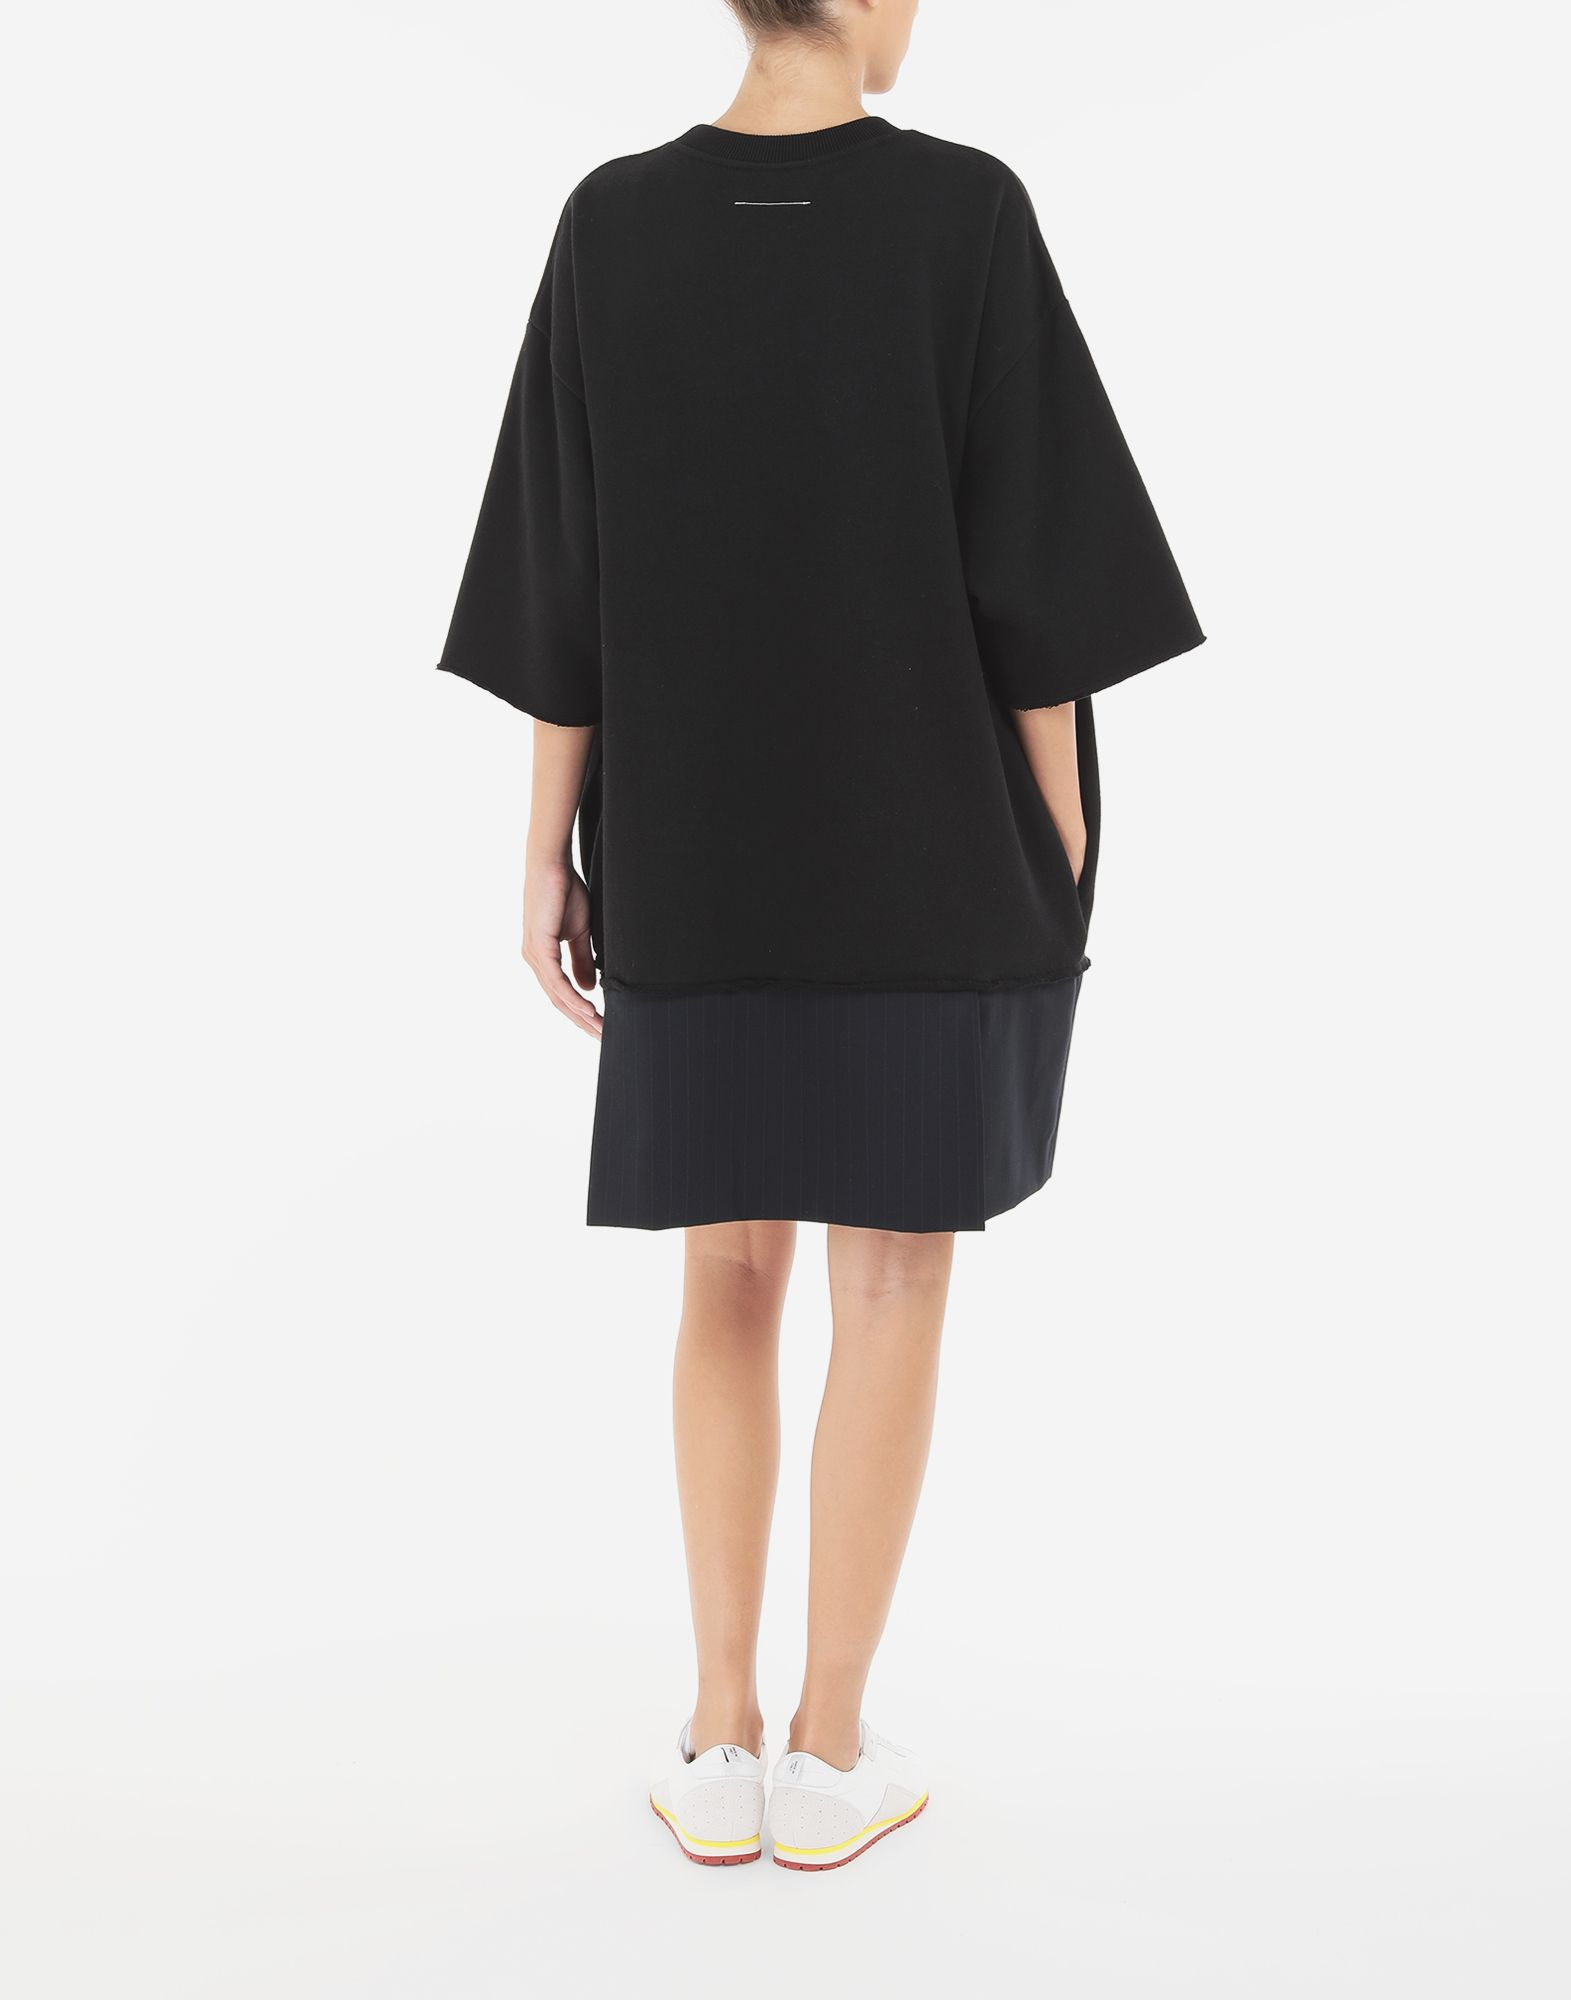 MM6 MAISON MARGIELA Spliced T-shirt dress Short dress Woman d